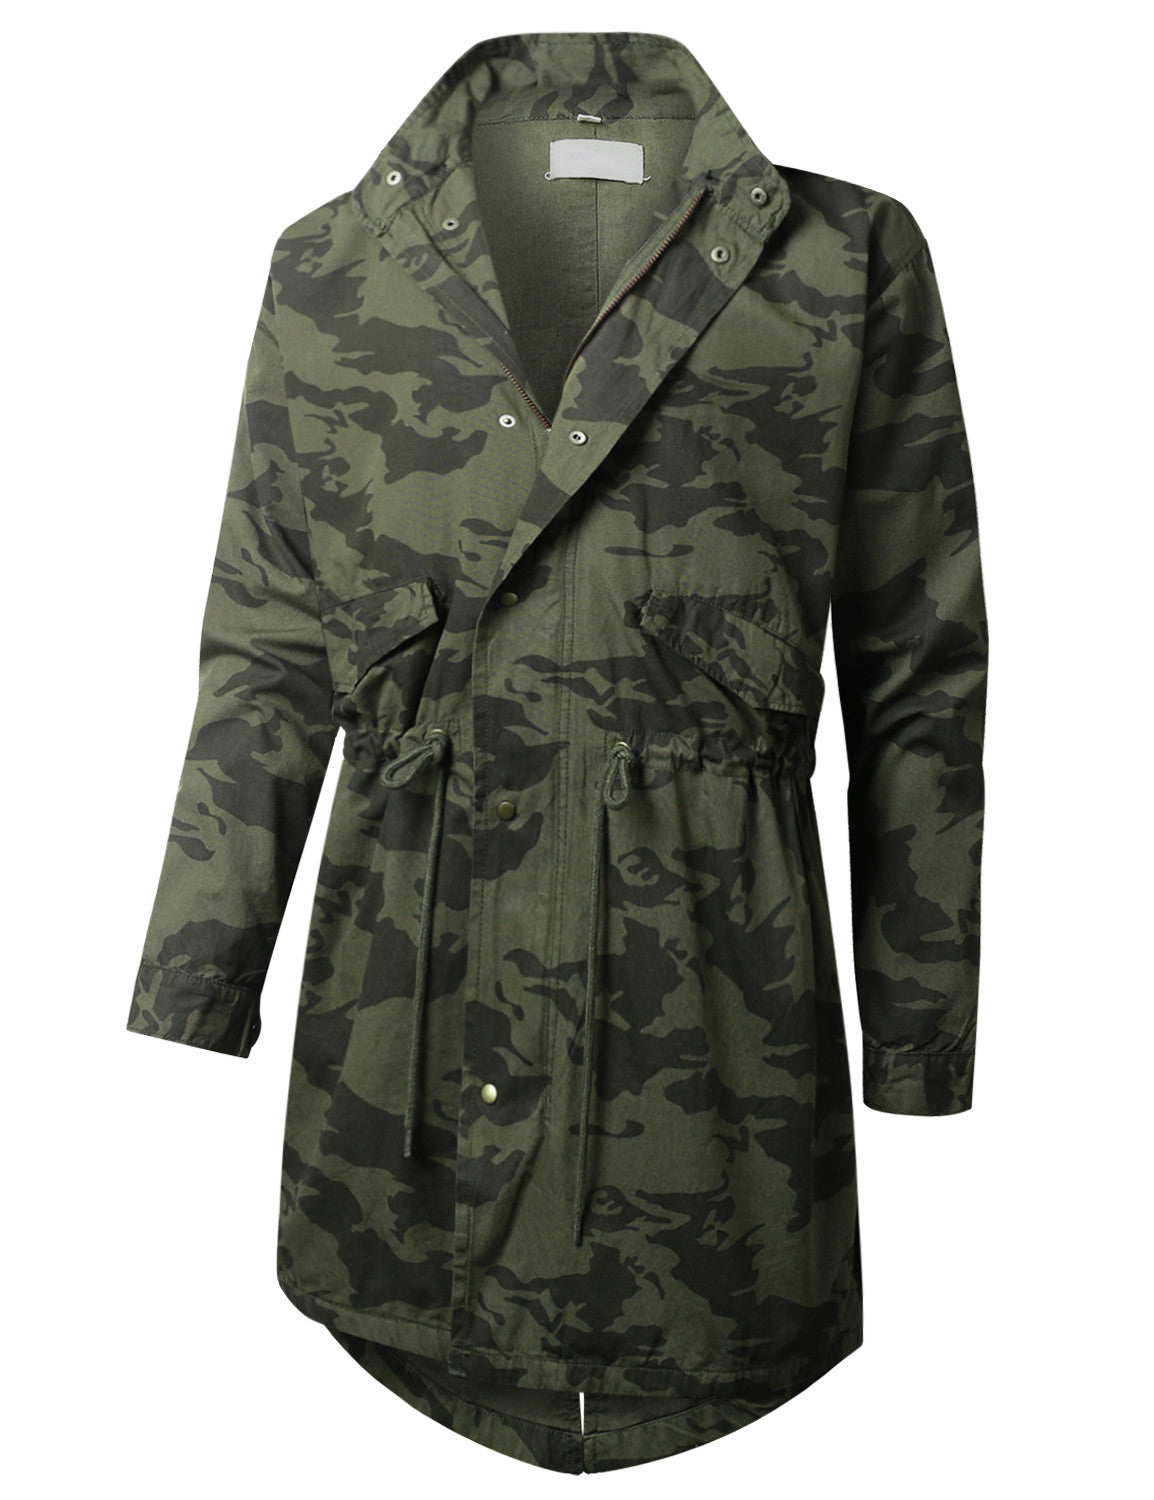 FATIGUE Camo Hooded Long Military Jacket - URBANCREWS